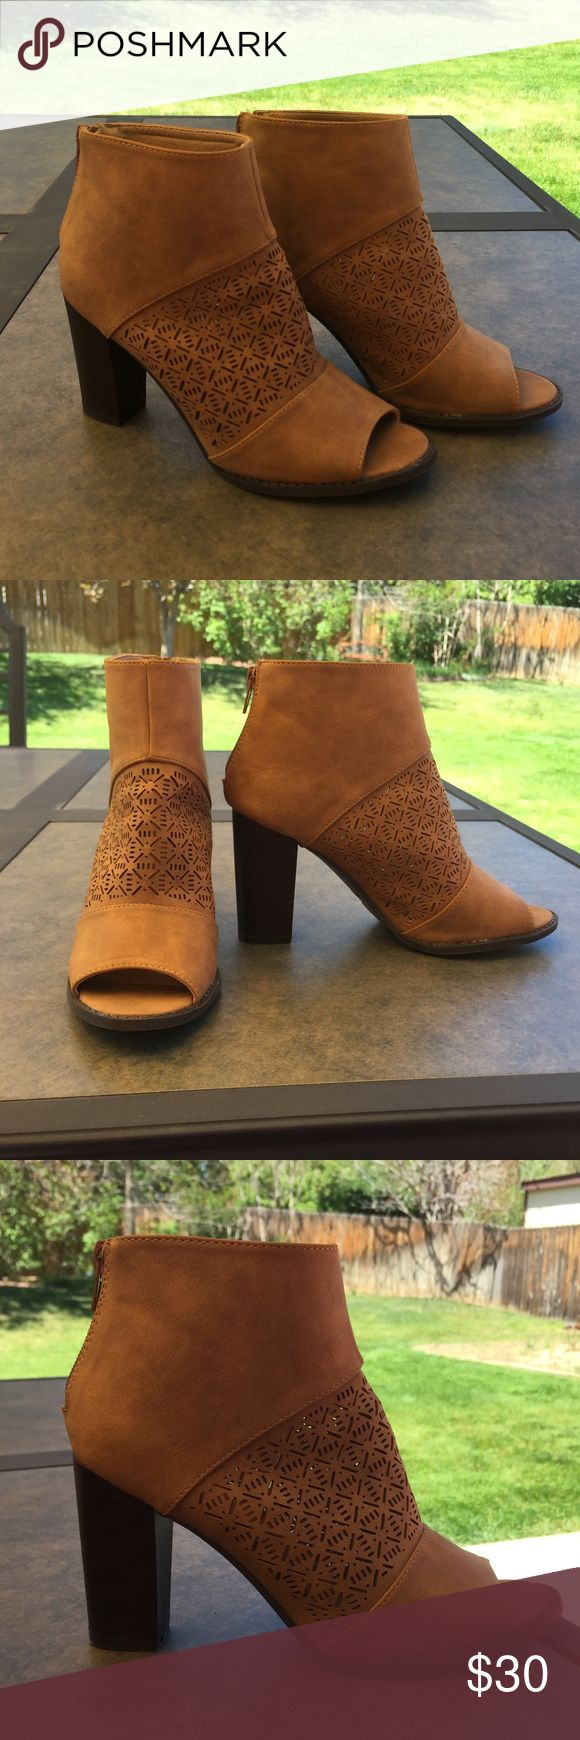 Open Toe Ankle Boots! Ankle boots with open toe! Super cute for summer! Perfect condition! Shoes Ankle Boots & Booties